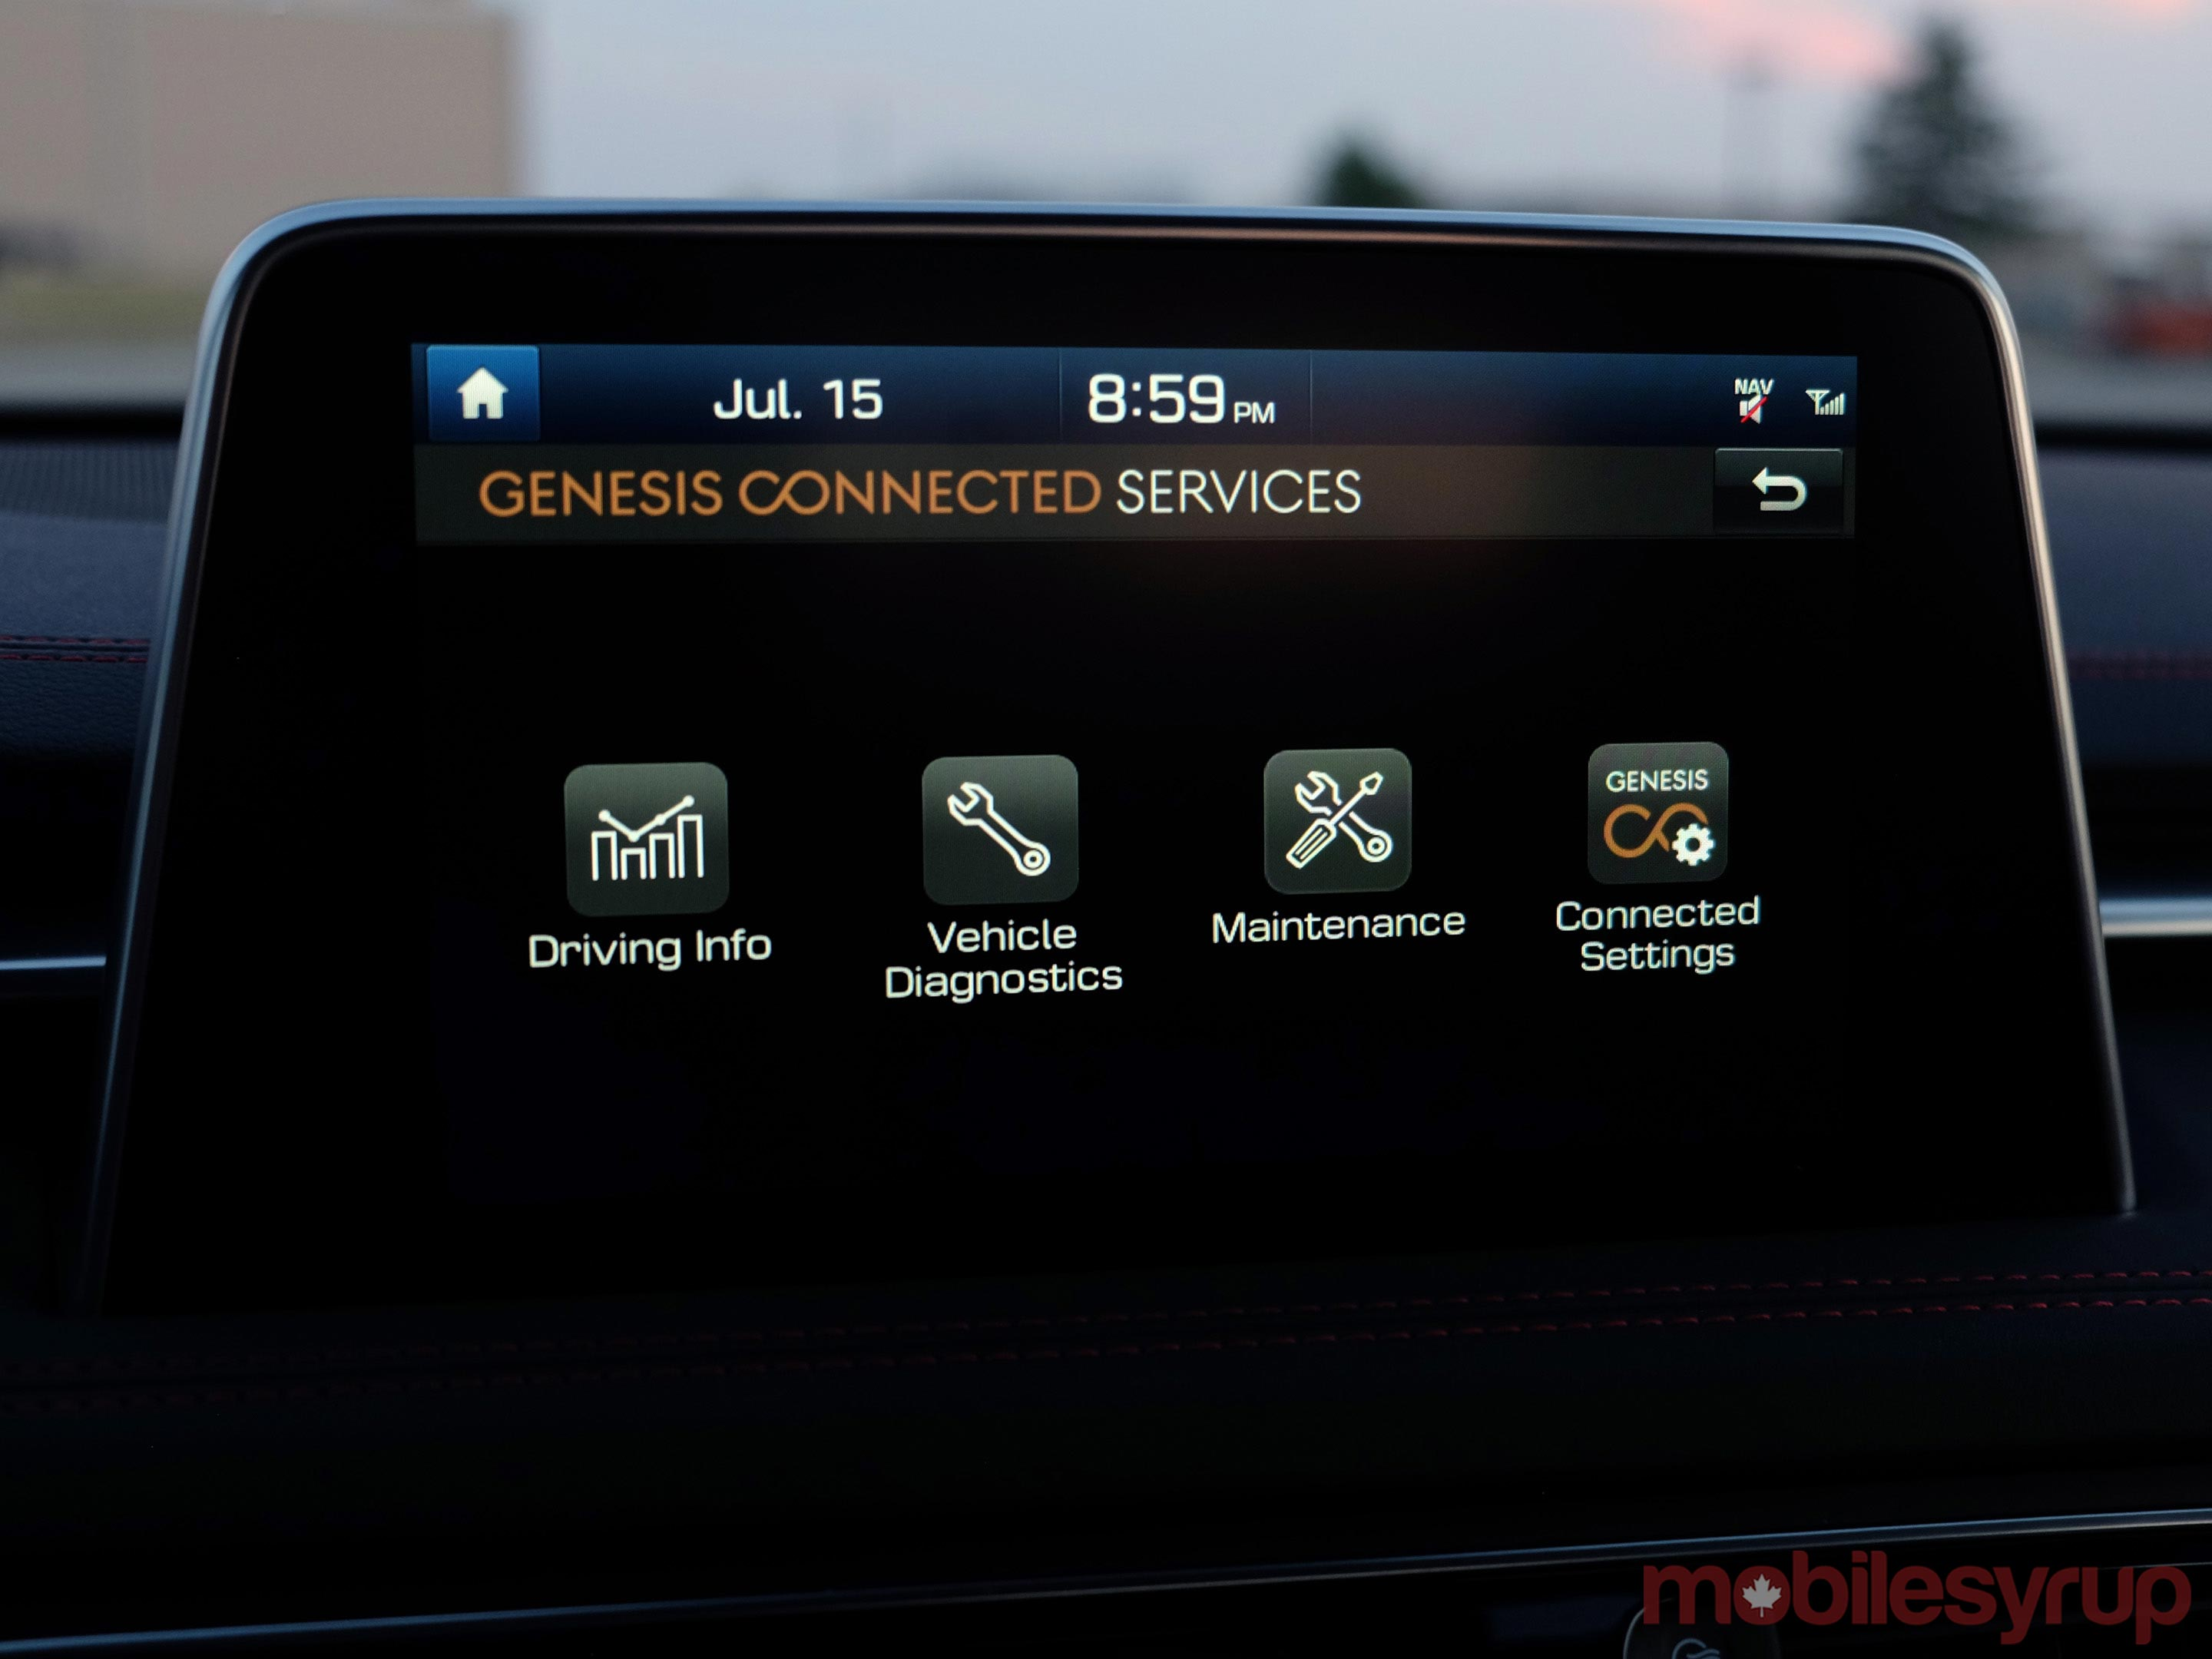 Hyundai Genesis G70 connected services